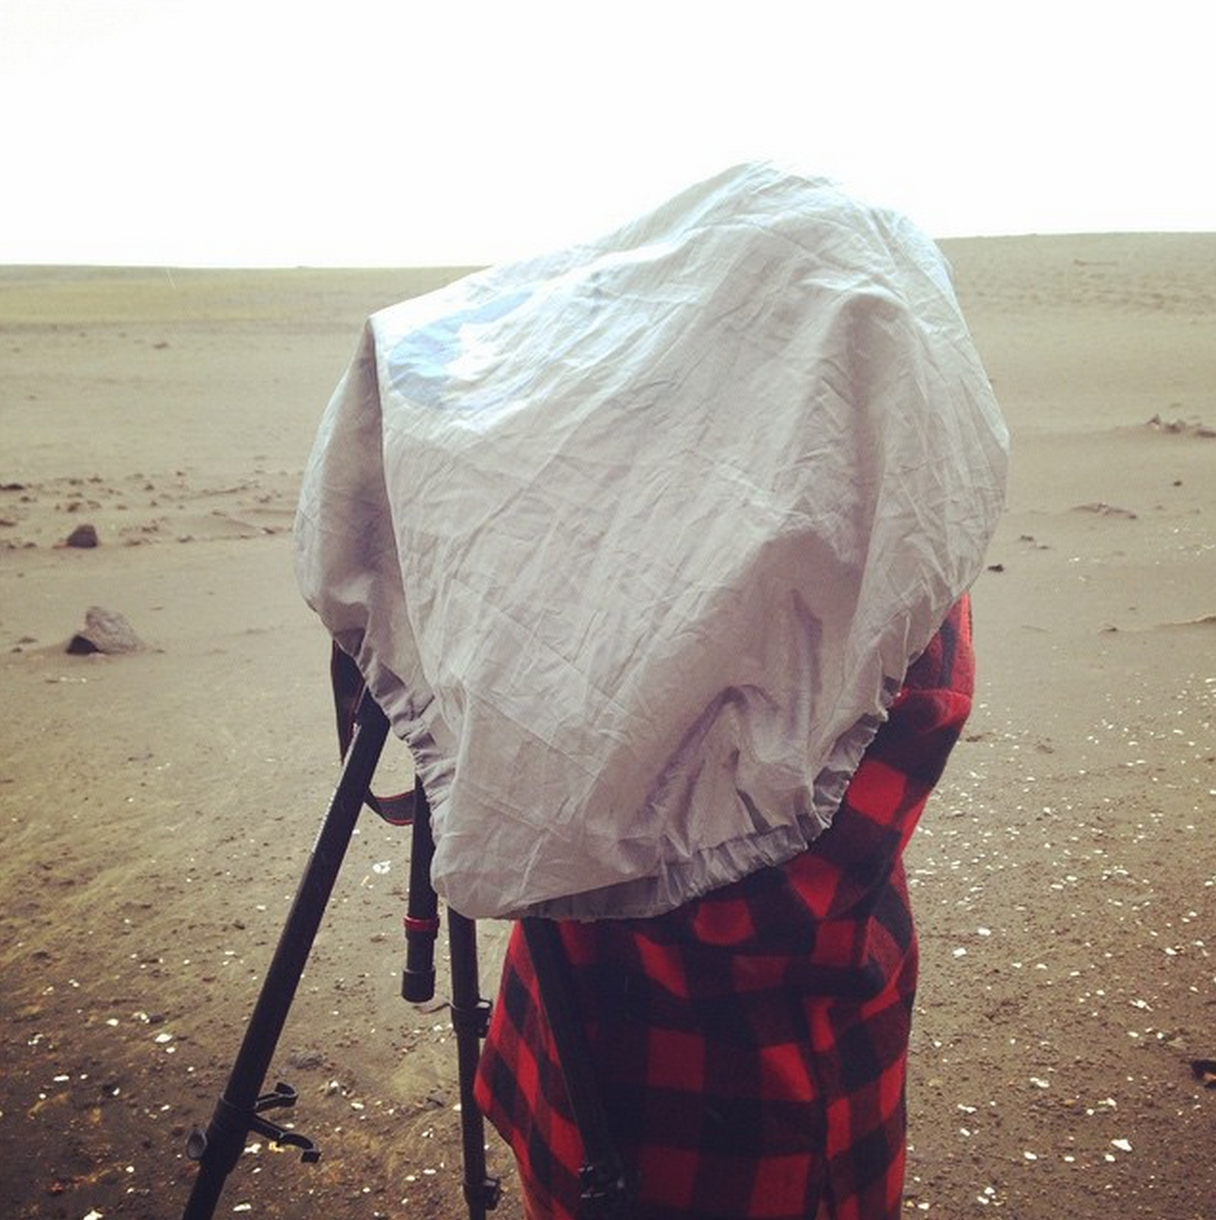 Mark having to protect the camera from EXTREME SAND conditions -  the  worst enemy to such equipment.